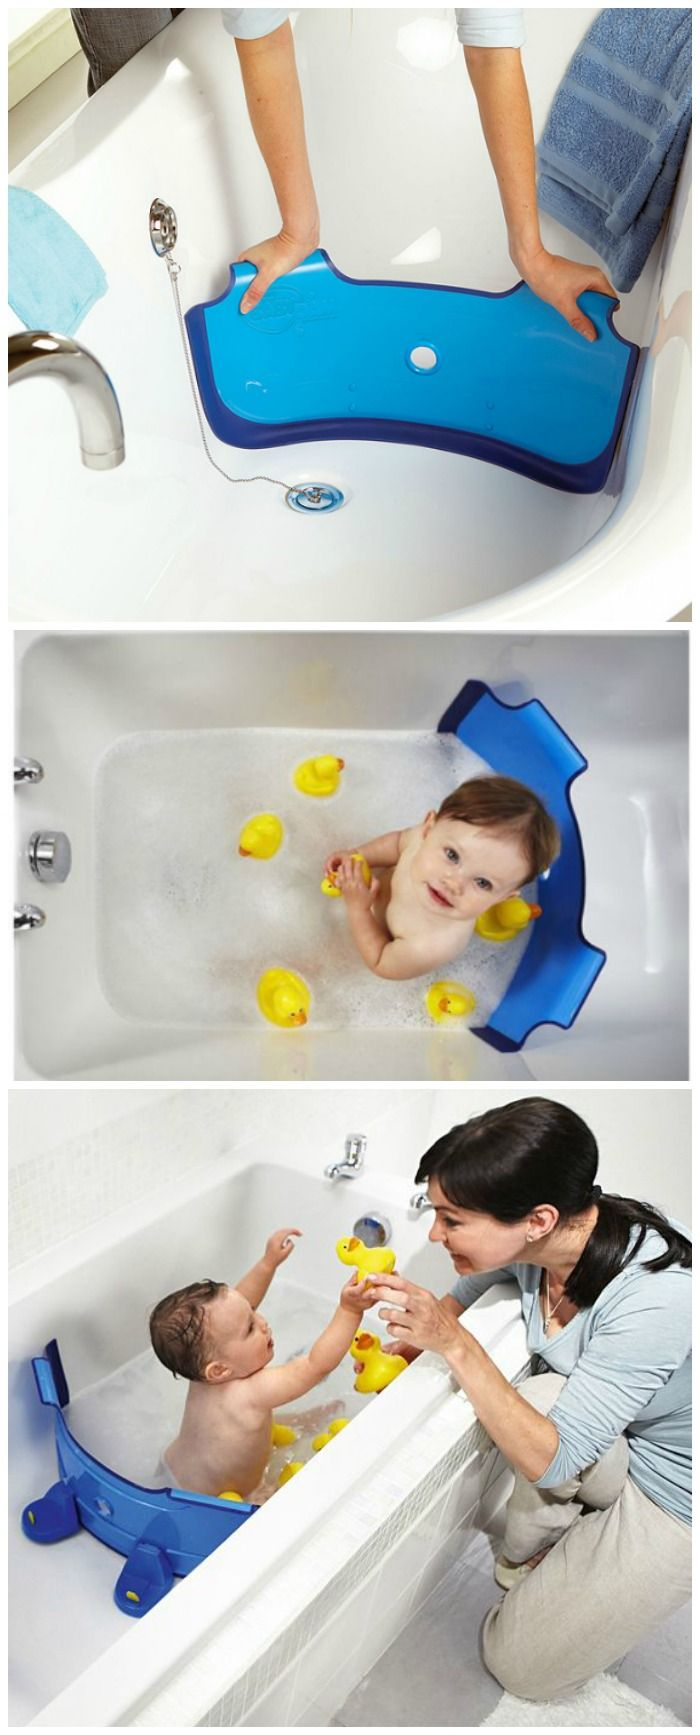 BabyDam Bathtub Divider turns your family bathtub into your baby's bathtub! Saves Water, Energy, Time, Space and Money! #affiliate